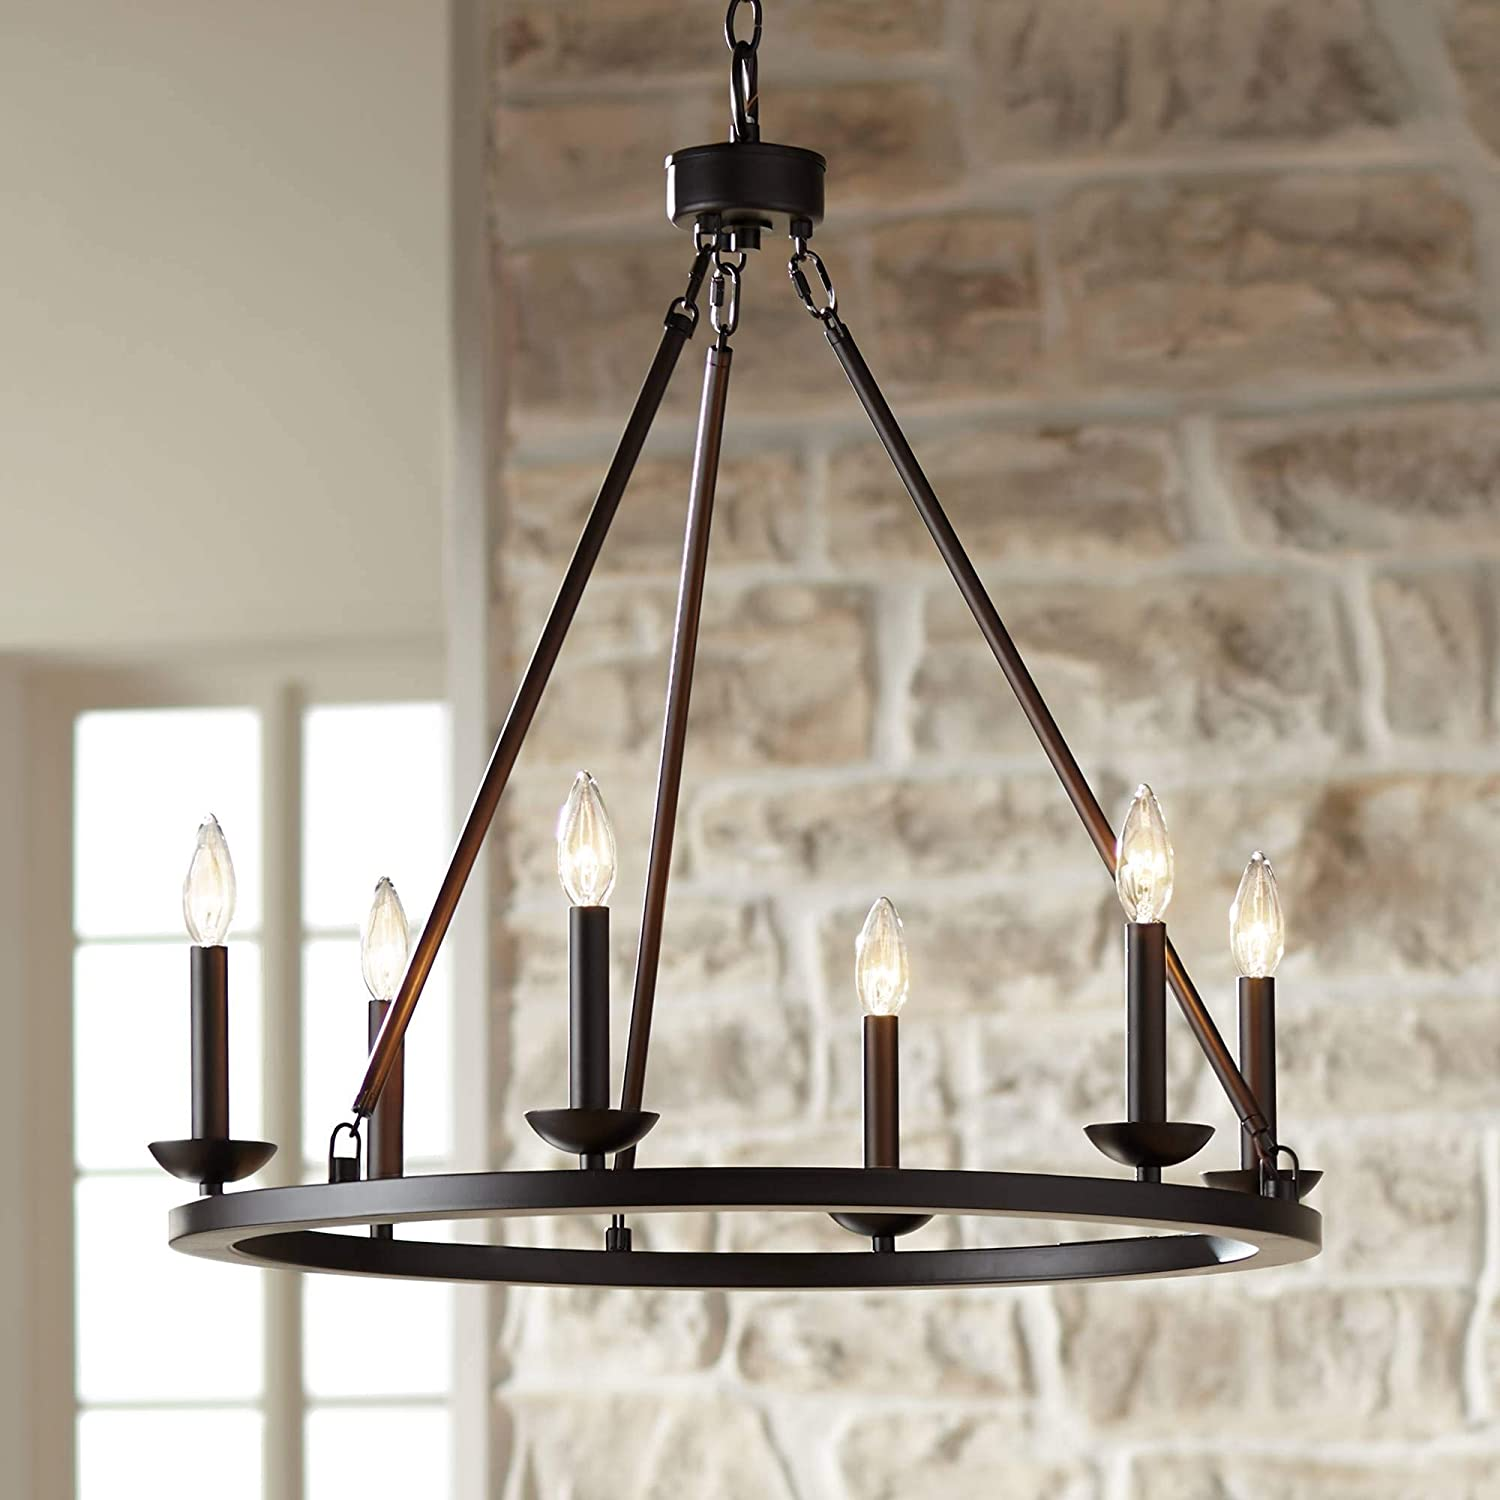 """Myland Bronze Wagon Wheel Chandelier 27"""" Wide Farmhouse 6-Light Fixture for Dining Room House Foyer Kitchen Island Entryway Bedroom Living Room - Franklin Iron Works"""